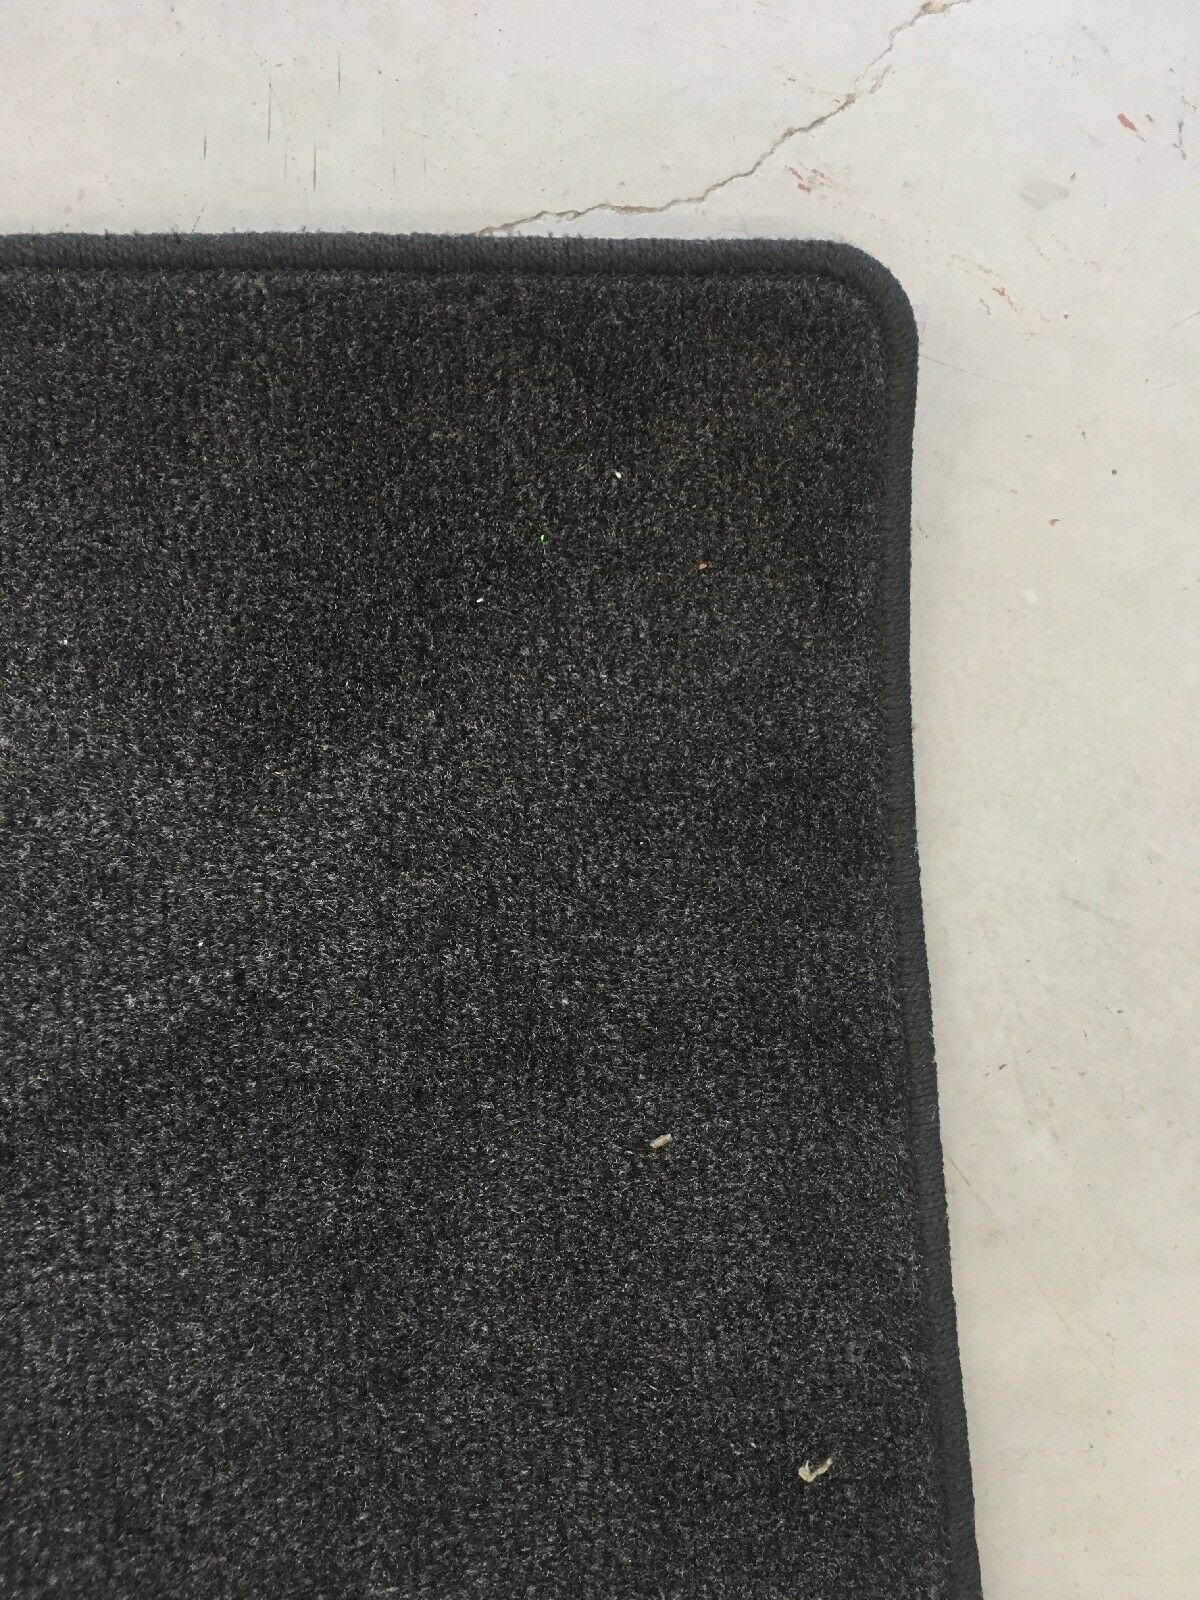 Used 2013 Nissan Sentra Floor Mats And Carpets For Sale